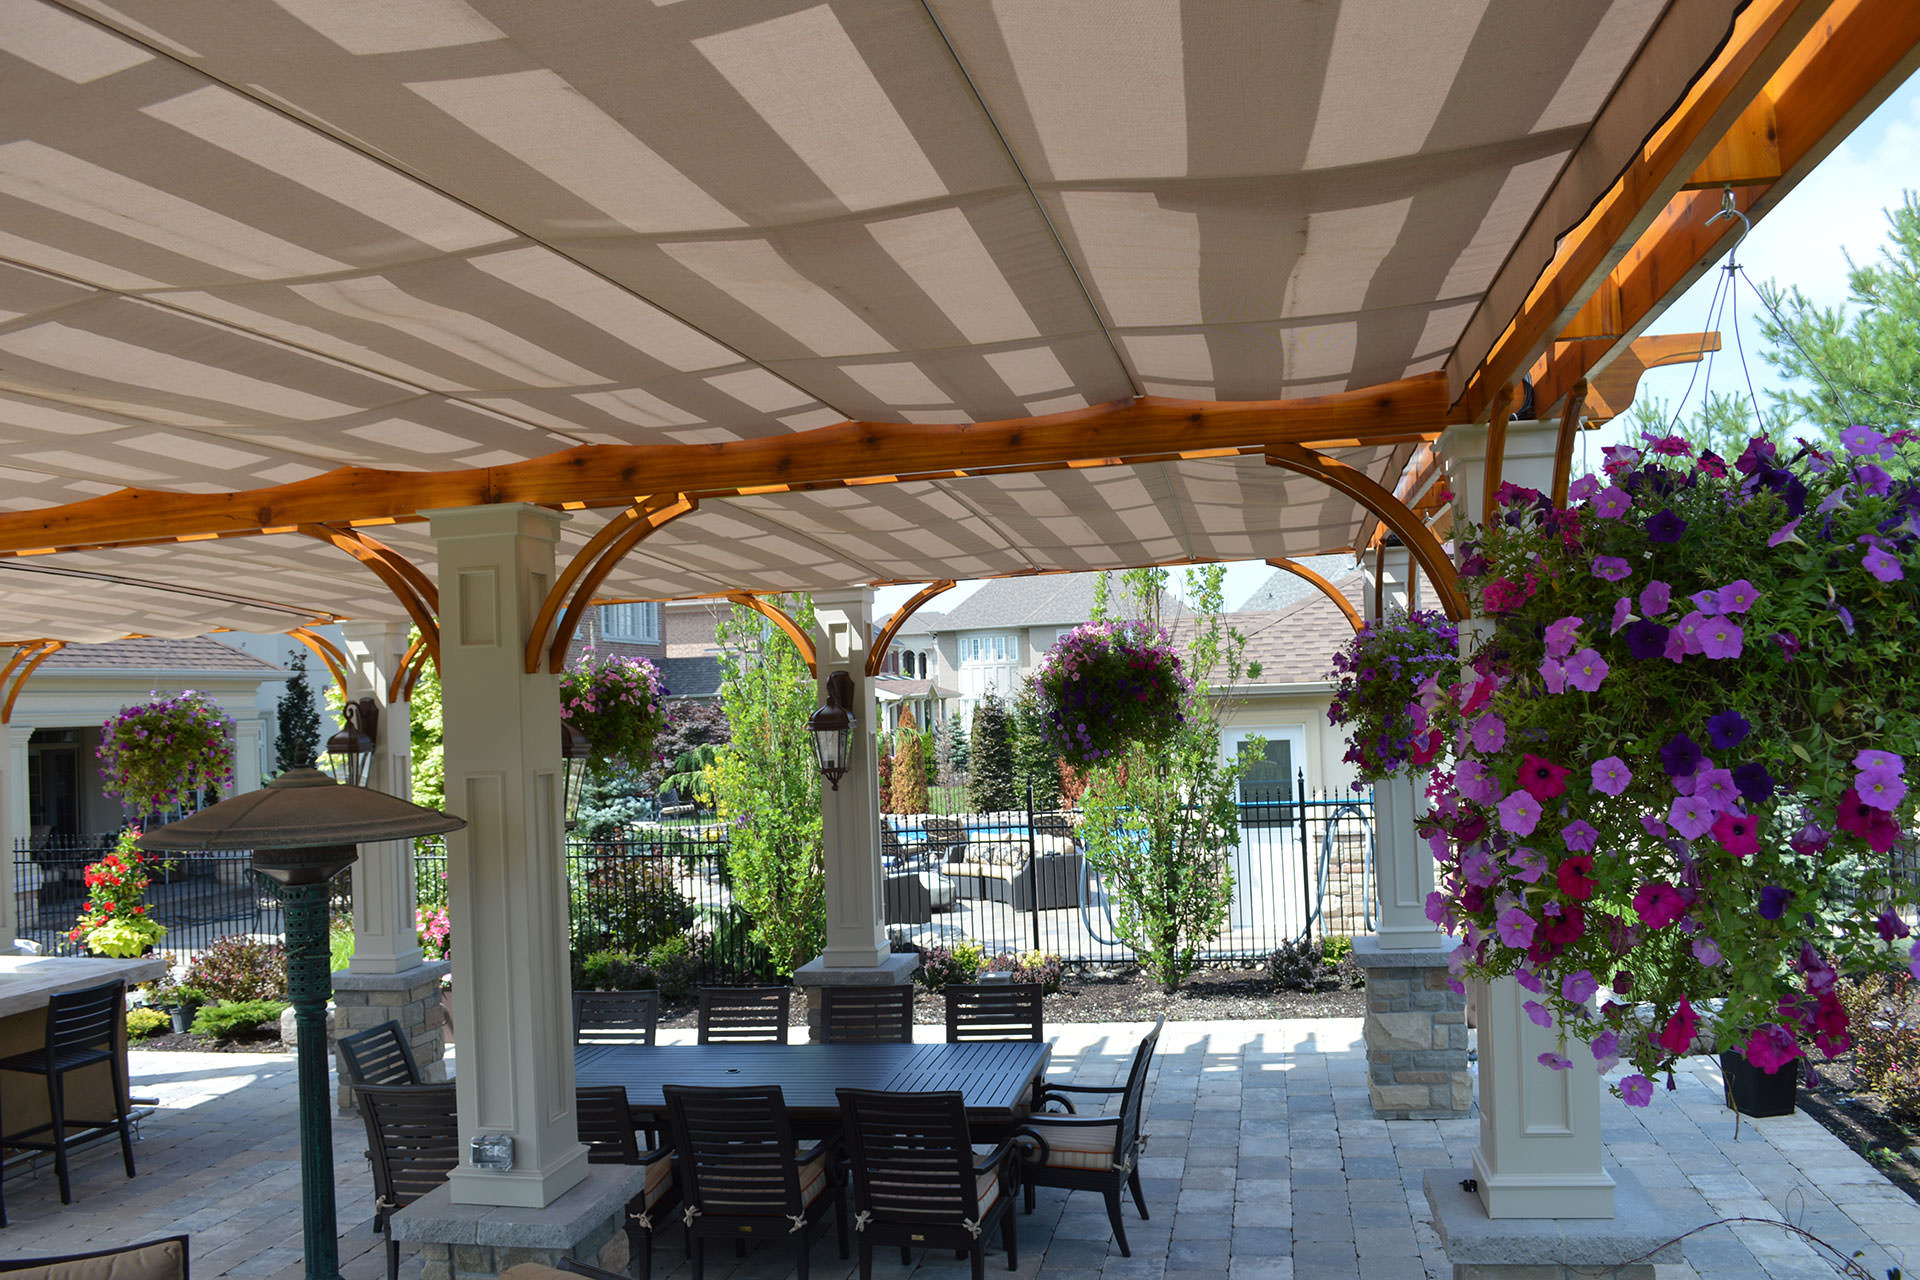 Retractable Canopies in Vaughan | ShadeFX Canopies